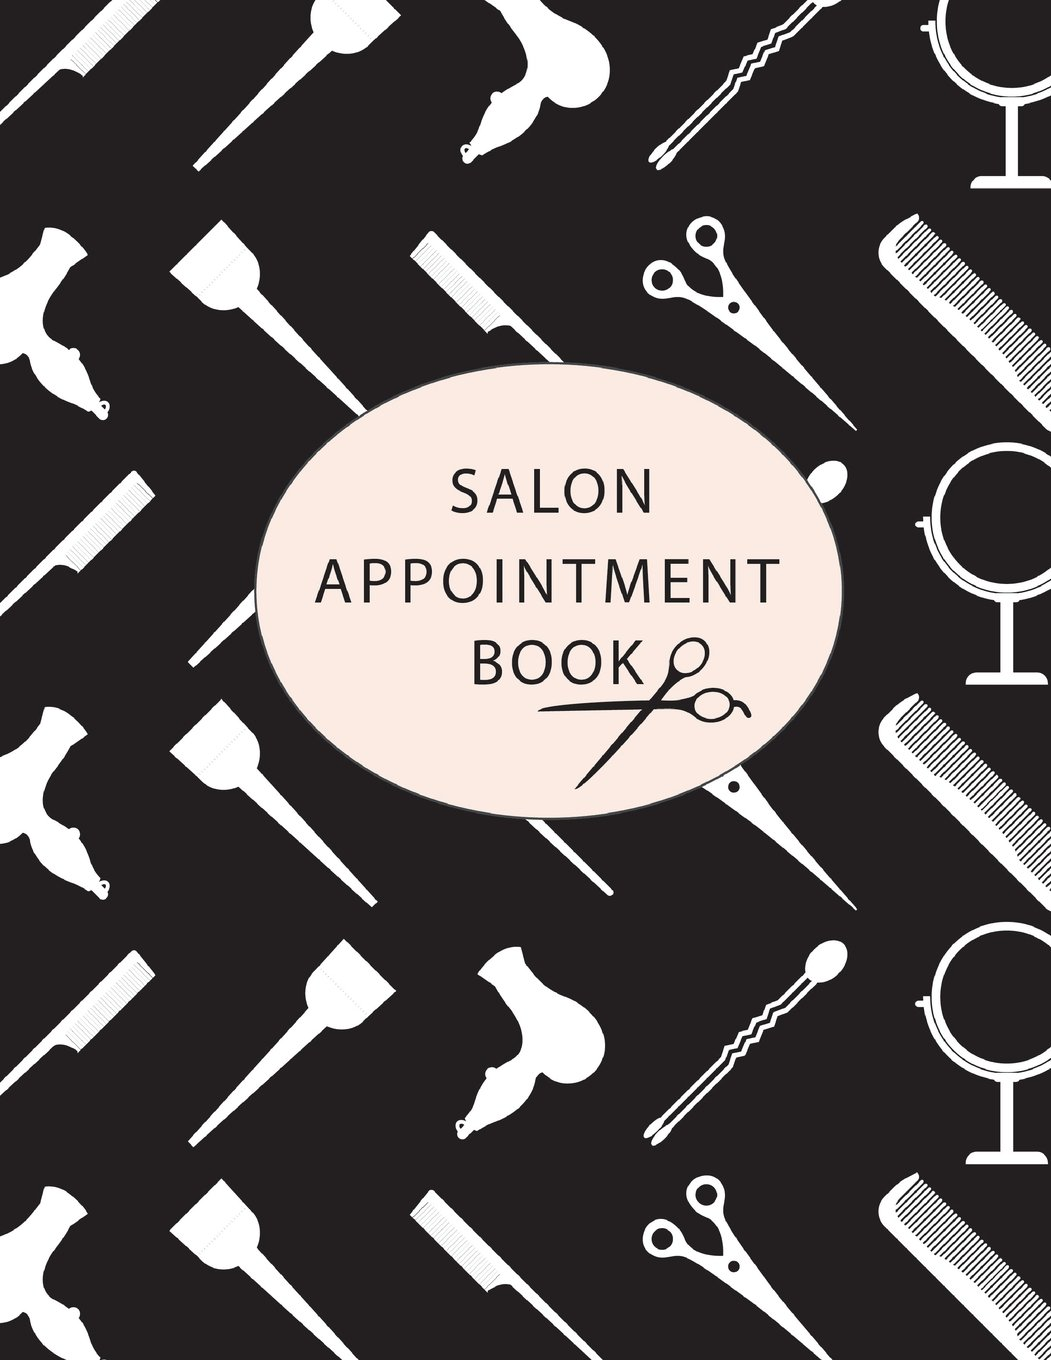 Download Salon Appointment Book: 4 Column Daily Appointment Book for Salons, Spa, Barbers, Hair Stylists, Person Daily and Hourly Schedule Notebook, Planners ... (Appointment Book for Salon) (Volume 2) ebook